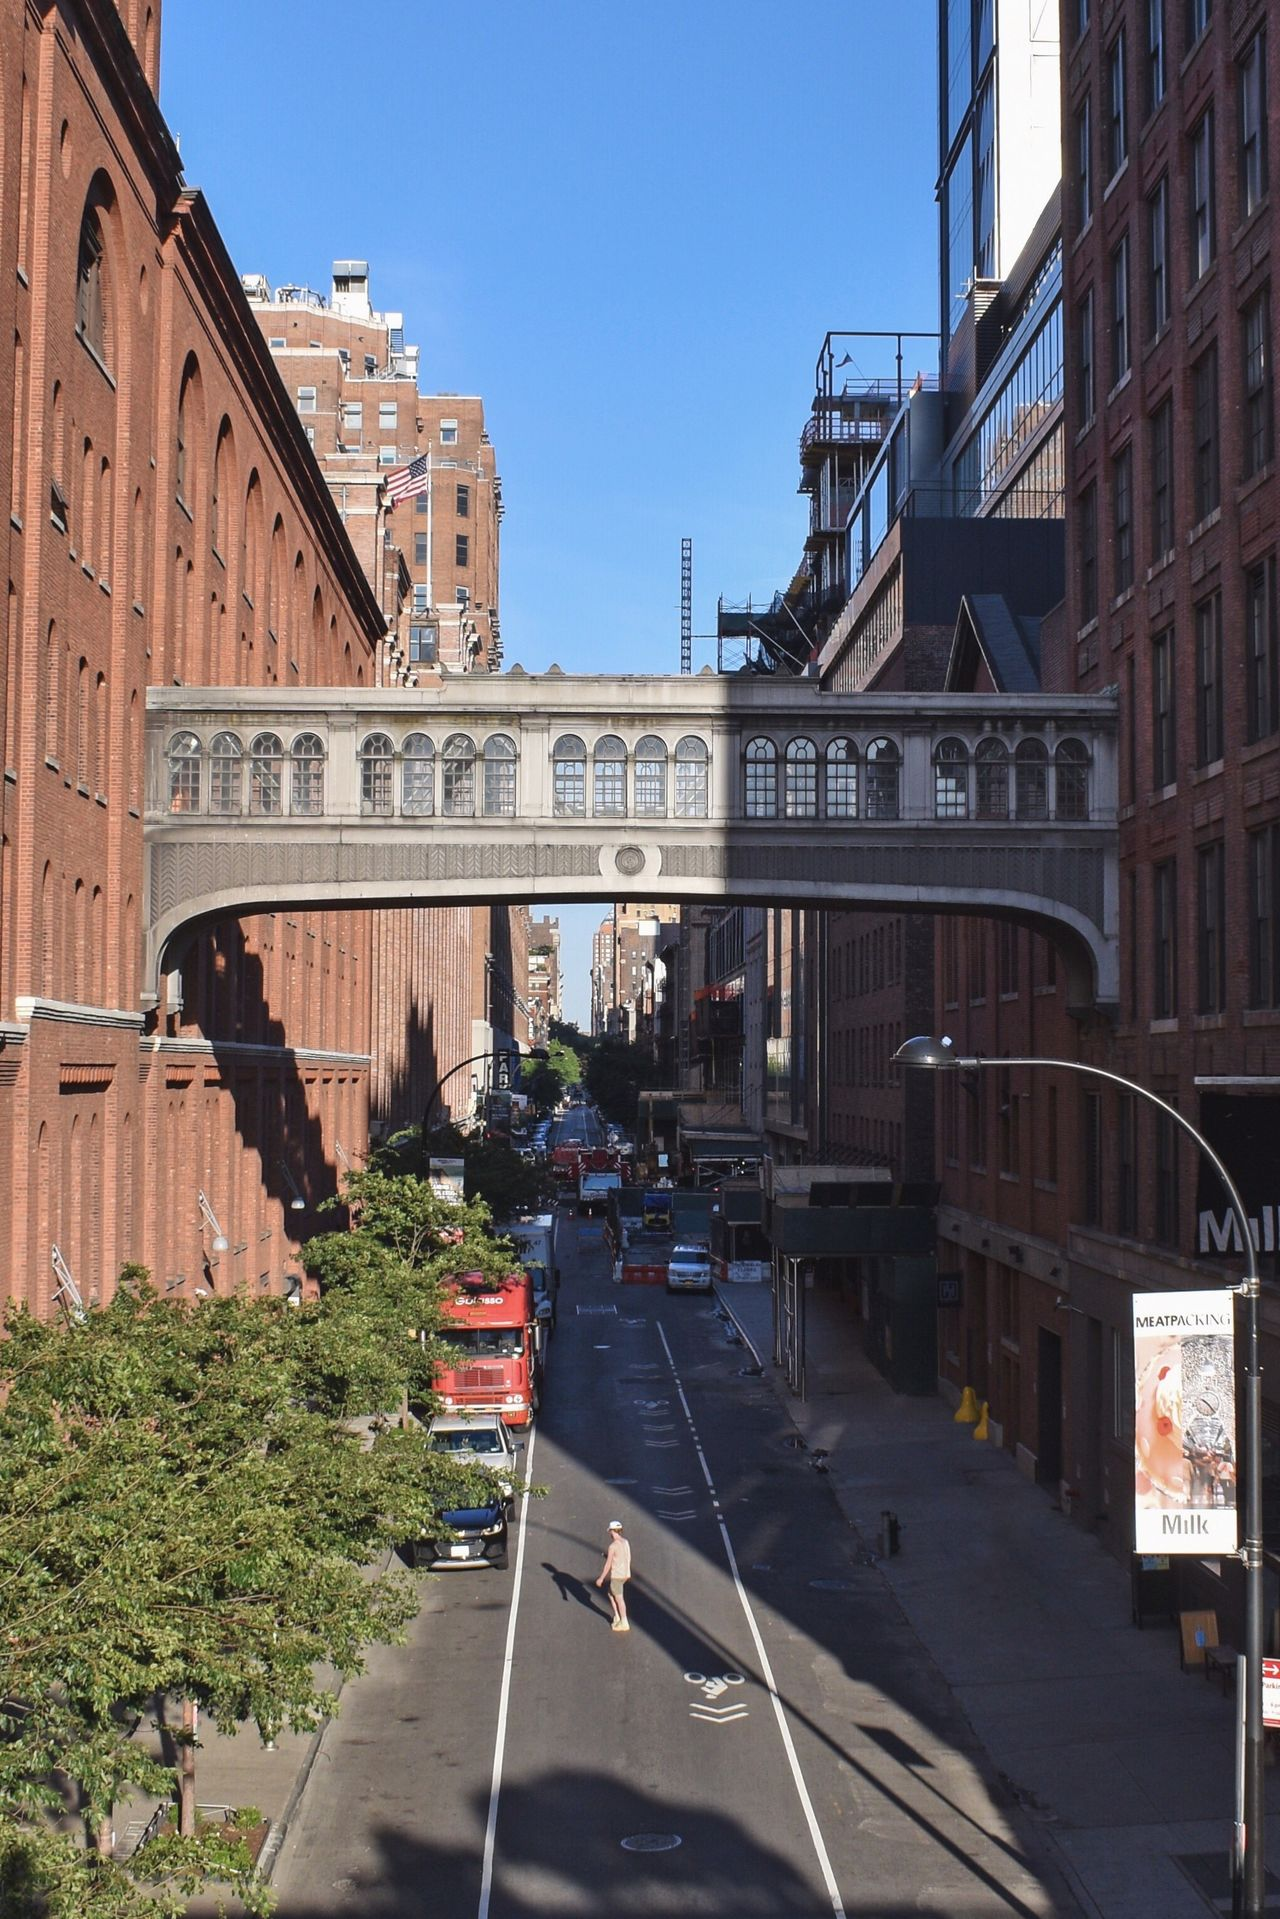 Architecture Built Structure Building Exterior Transportation Clear Sky Day Incidental People Outdoors Land Vehicle City Mode Of Transport Sunlight Car The Way Forward Road Sky Real People Tree People Streetphotography Street Photography Street Life Streetphoto In The Middle High Line Park